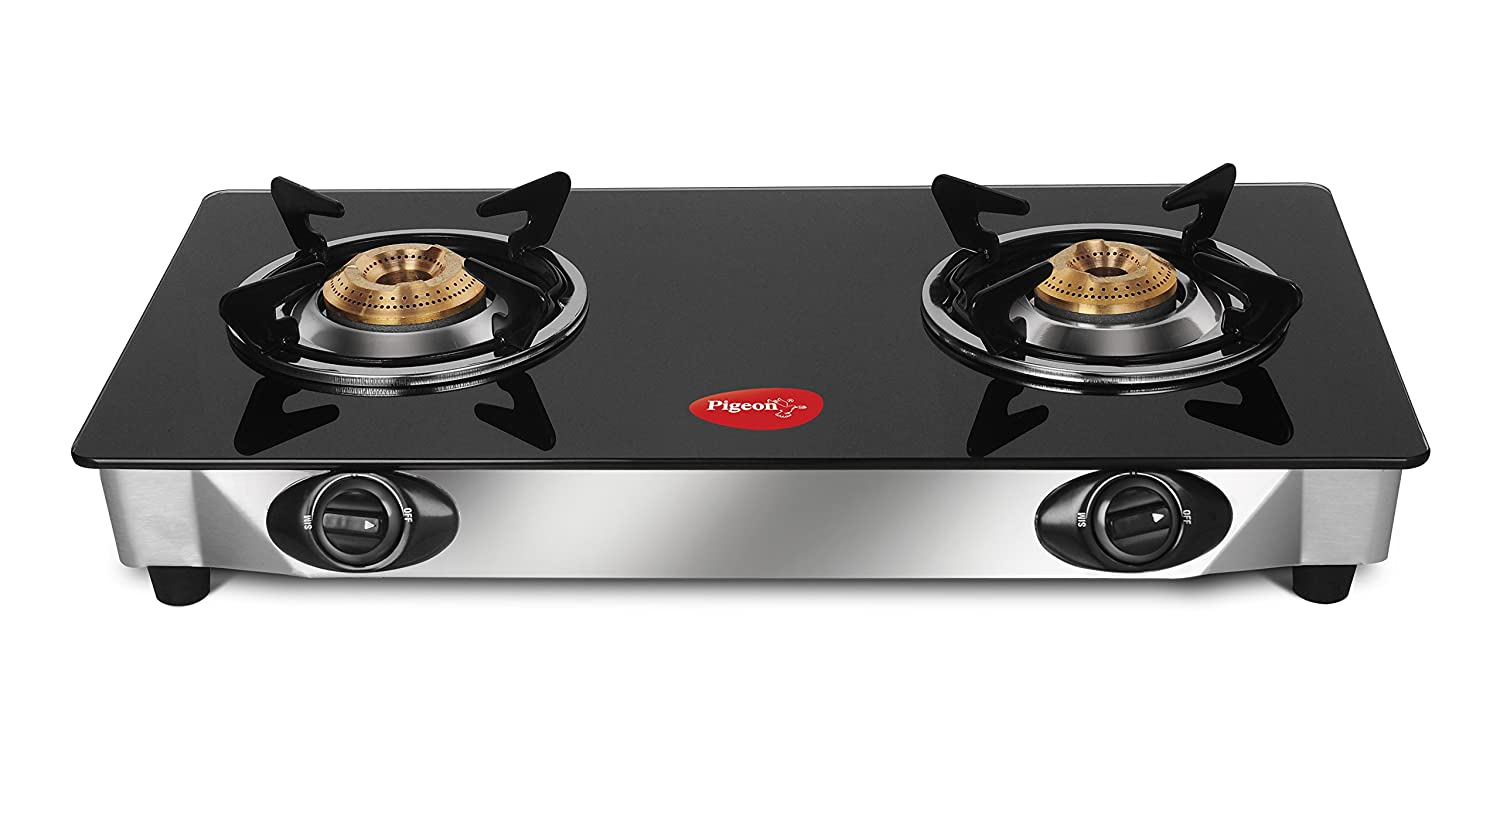 2717beec81828 Buy Pigeon By Stovekraft Favourite 2-Burner Glass Top Gas Stove ...